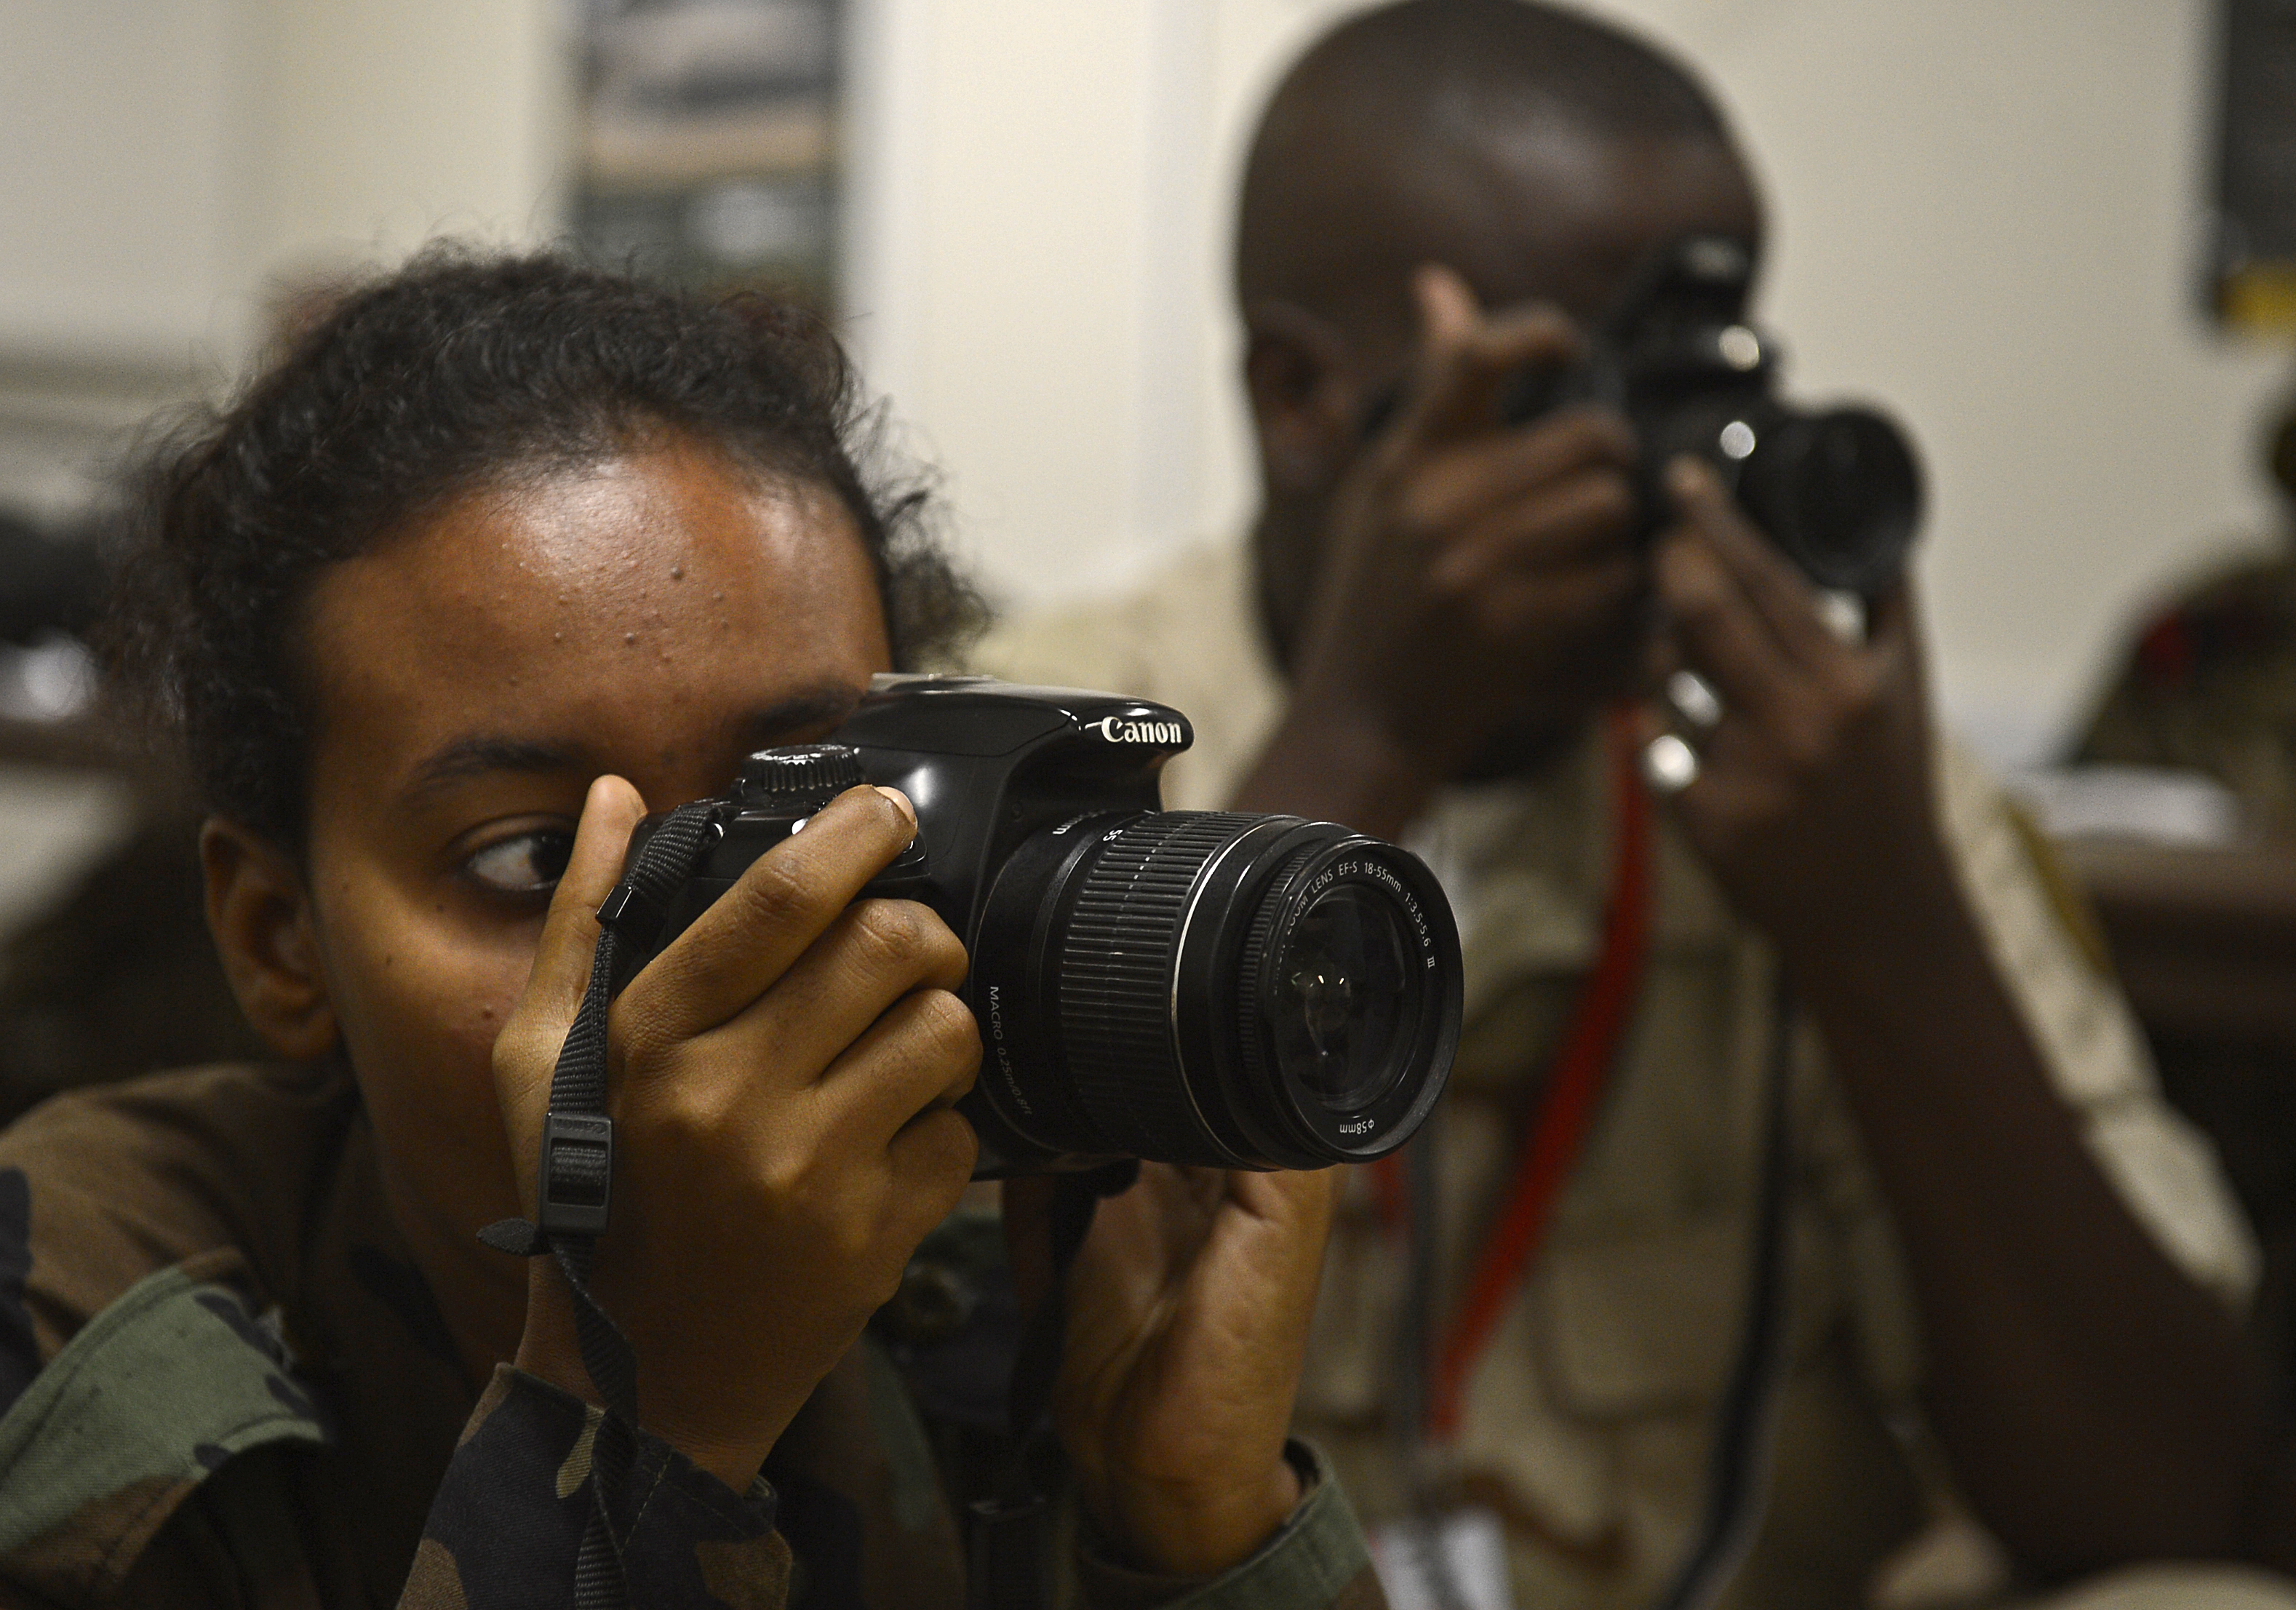 2nd Class Rahma Mahmoud, left, and Cpl. Arafat Abdo, both members of the Djibouti Armed Forces (FAD), take photos to demonstrate a photography technique Dec. 2, 2015, at Camp Lemonnier, Djibouti. Combined Joint Task Force-Horn of Africa public affairs personnel shared techniques for taking still images, operating a DSLR camera and composing an image to help improve the FAD's public affairs capabilities. (U.S. Air Force photo by Senior Airman Peter Thompson)